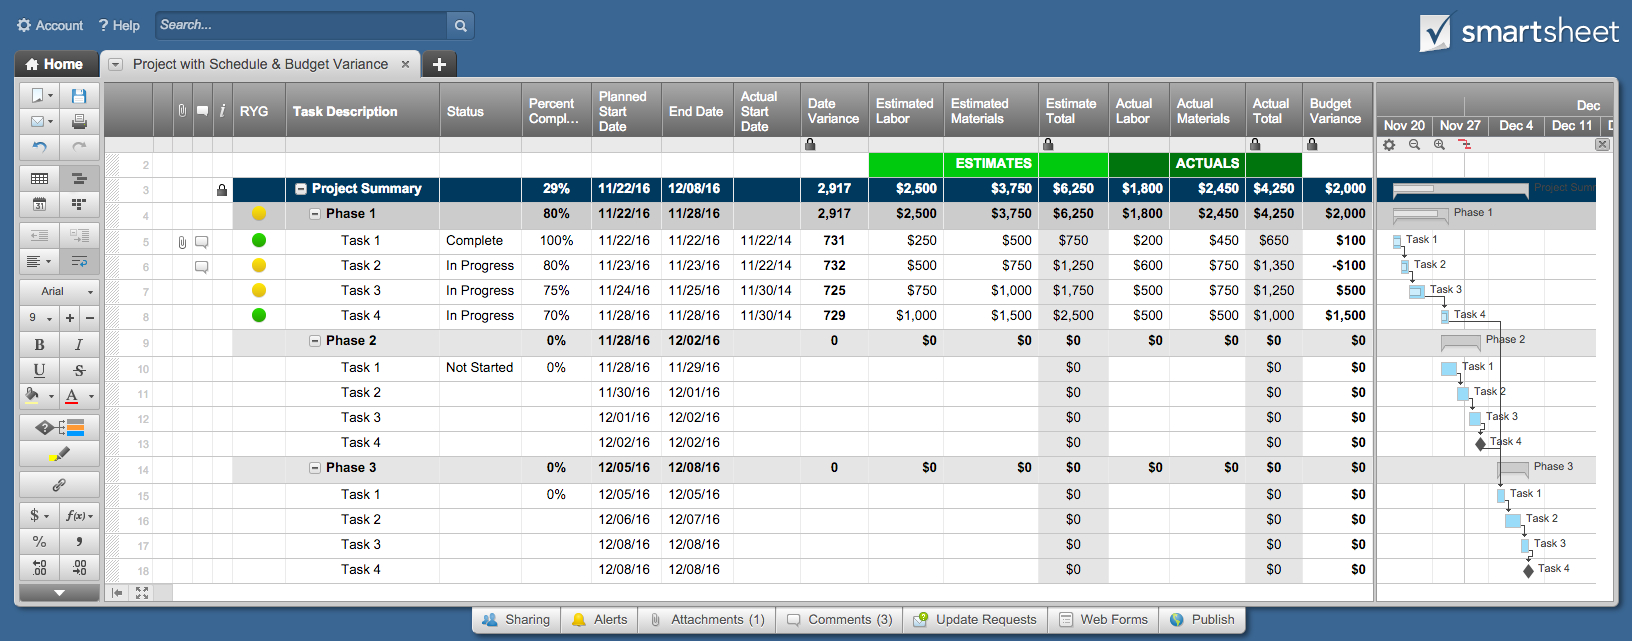 Free Excel Project Management Templates Within Budgeting Tool Excel